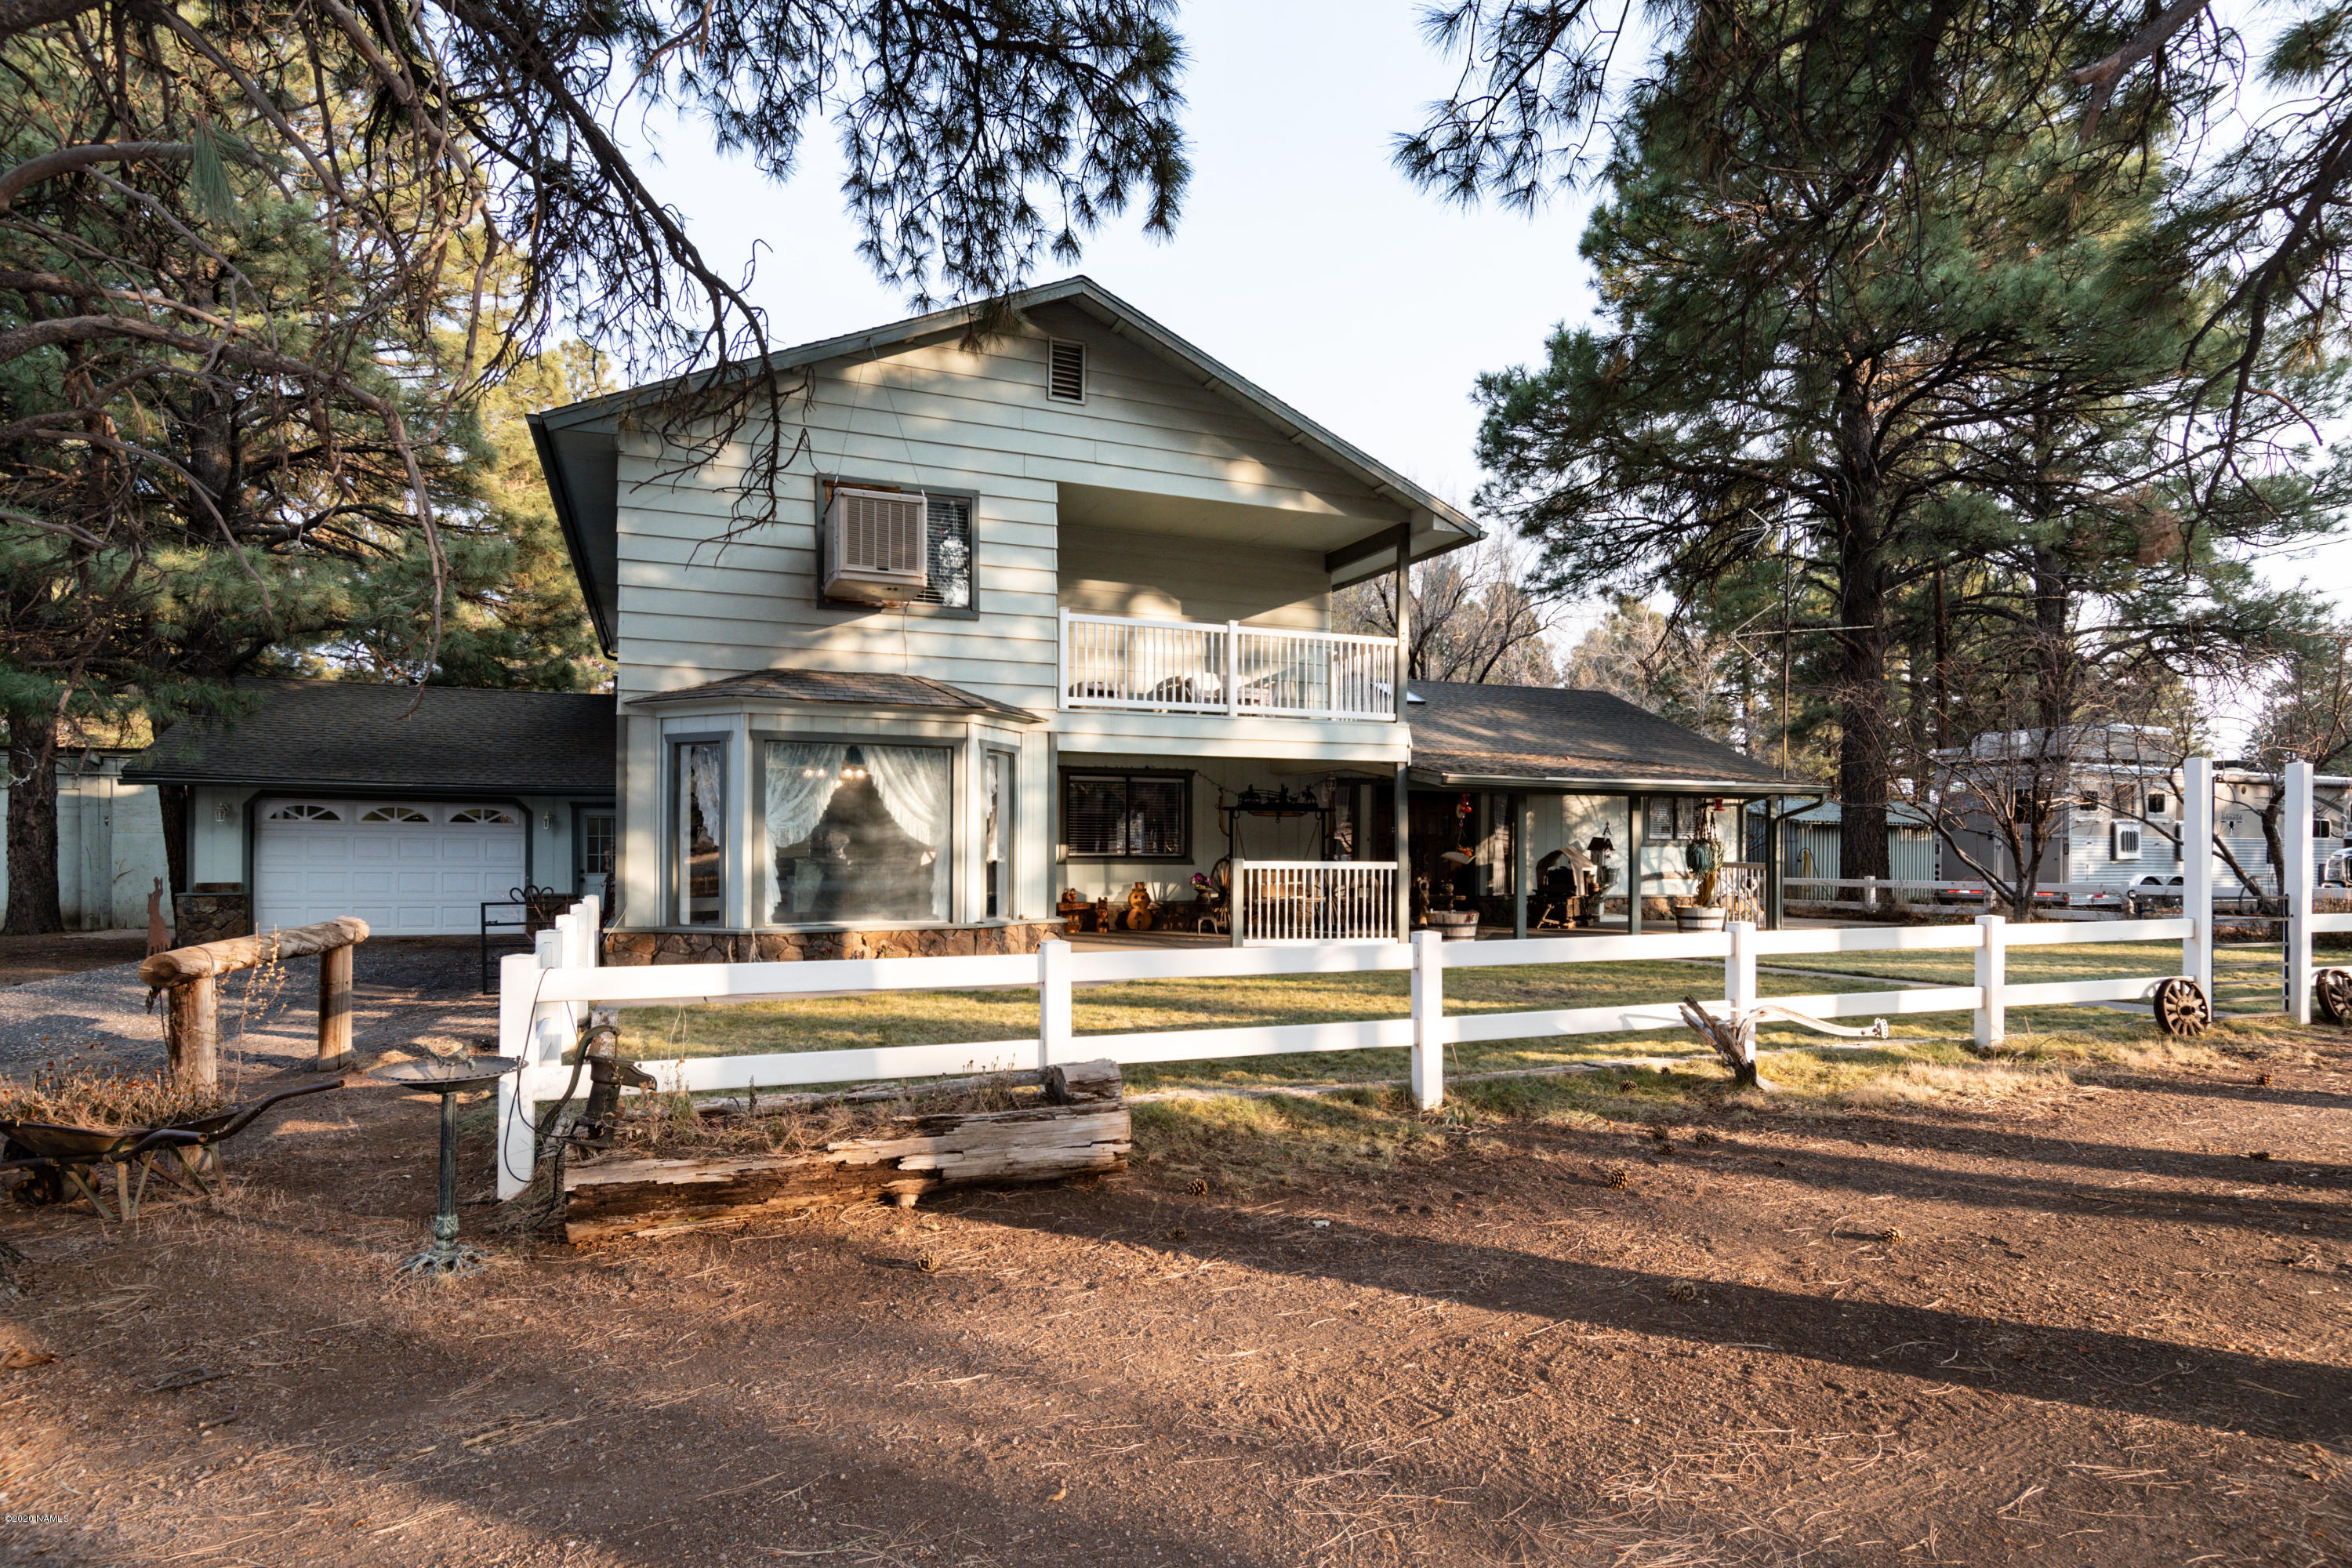 Photo of 6701 N N Rain Valley Rd Road, Flagstaff, AZ 86004